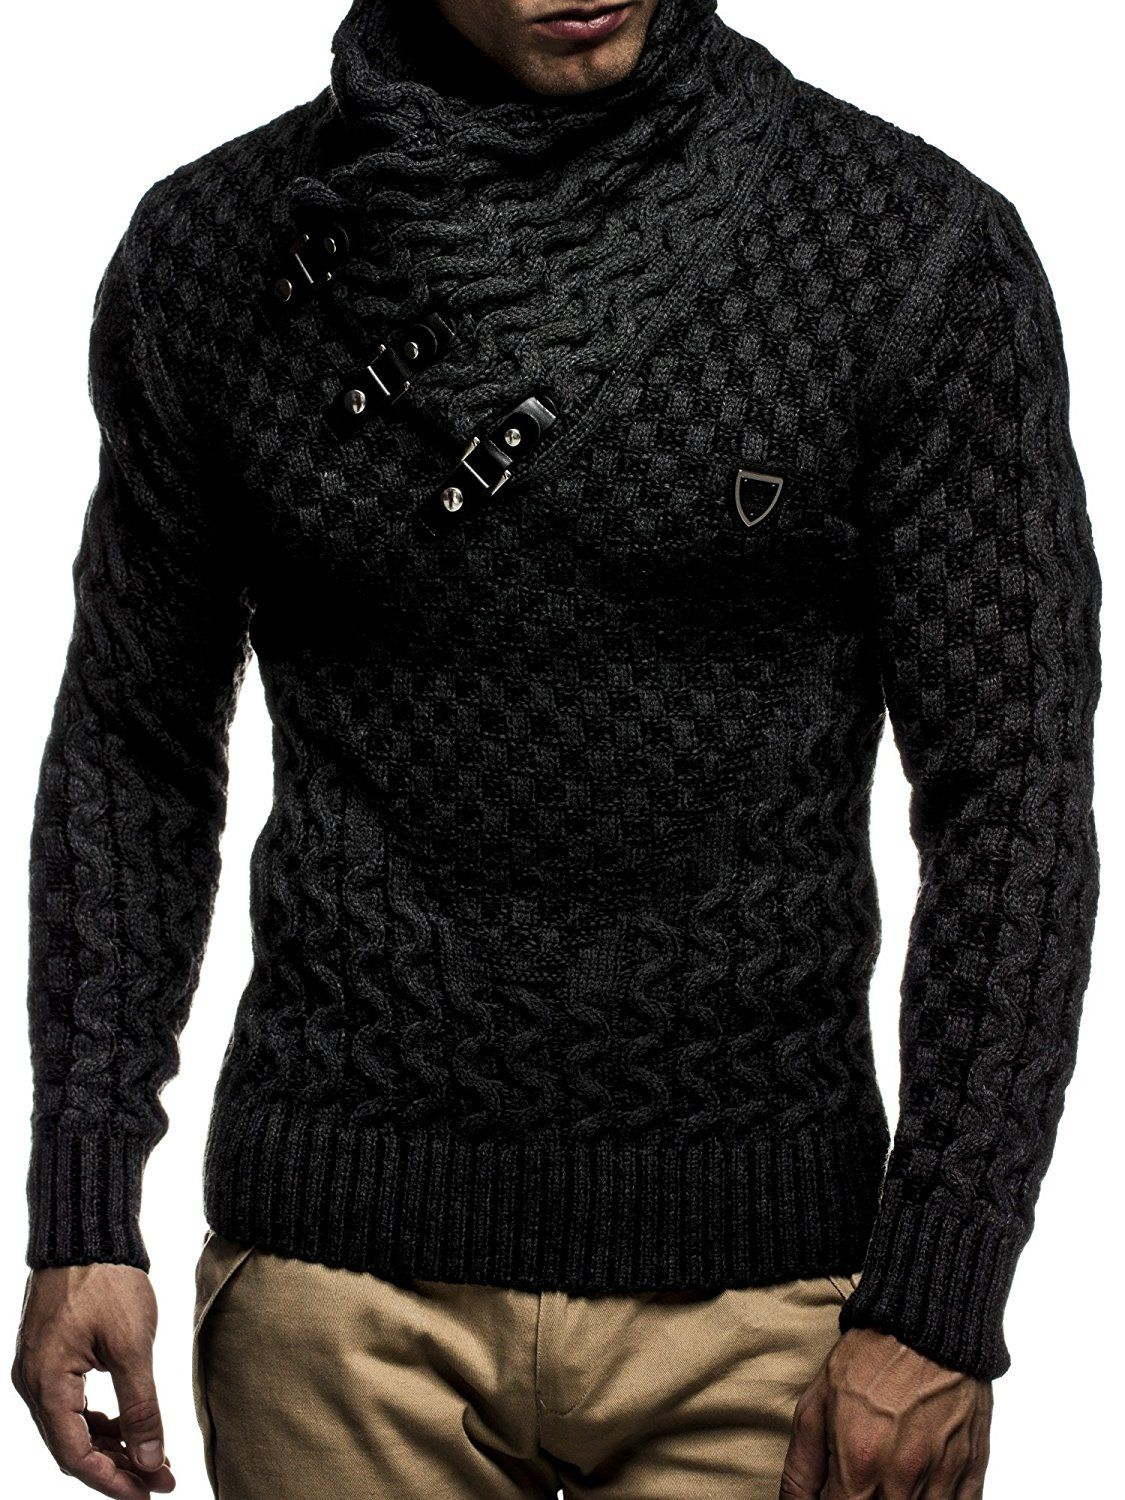 Leif Nelson LN5255 Men s Pullover With Faux Leather Accents  Size US - S EU  - M, Black Anthracite at Amazon Men s Clothing store  40e1479ec7